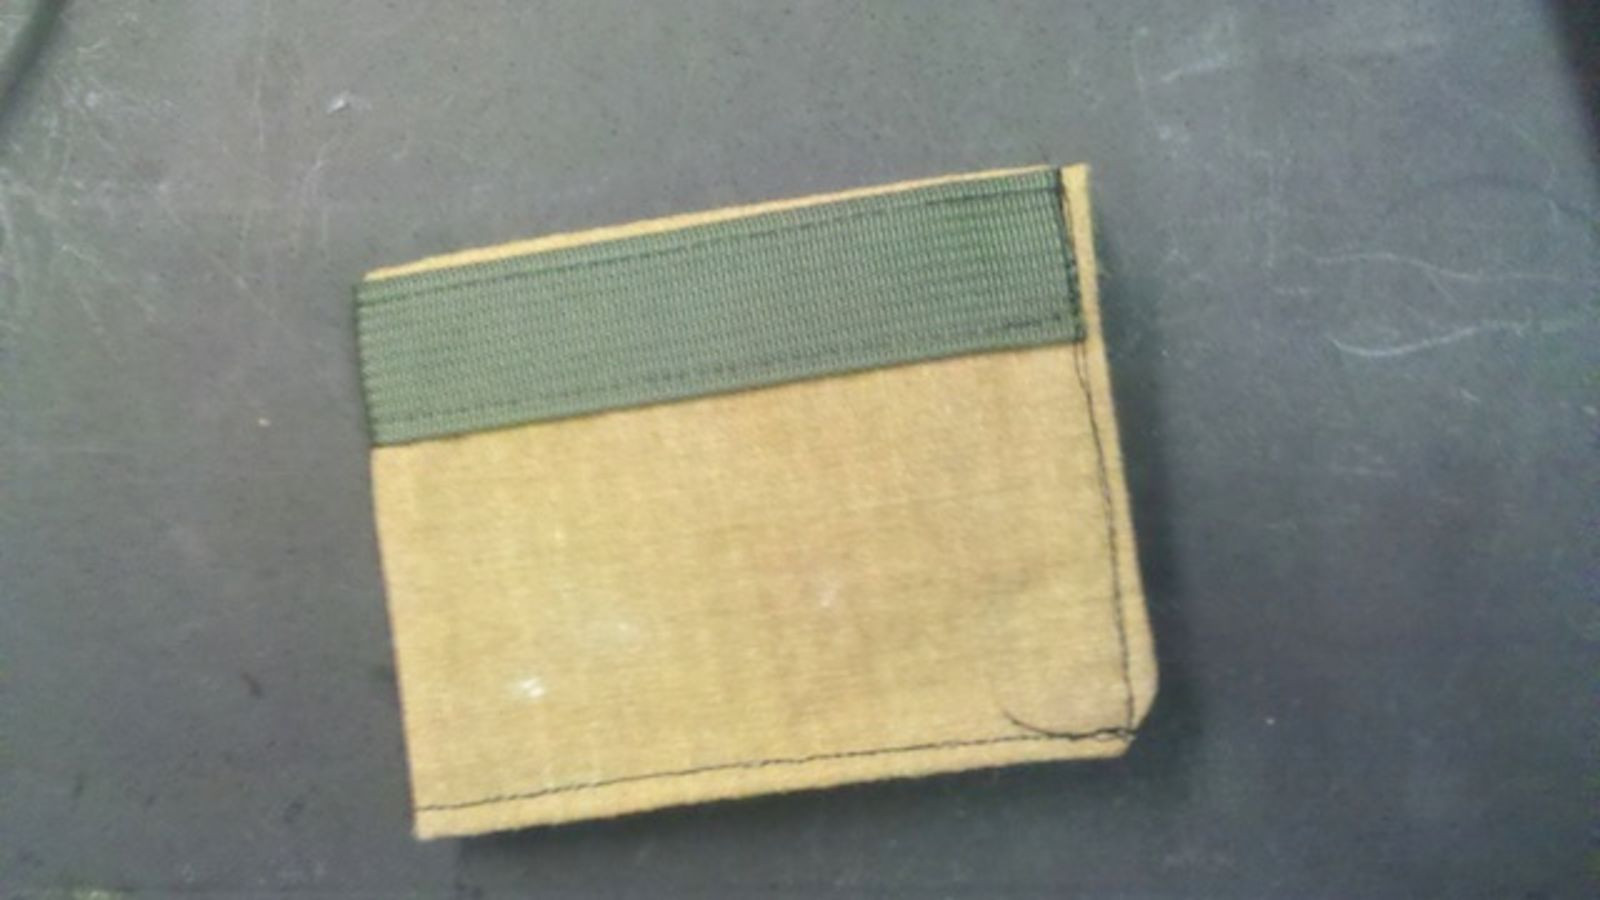 Best ideas about DIY Rfid Wallet . Save or Pin Make Your Own RFID Shielded Wallet To Foil ID Thieves Now.